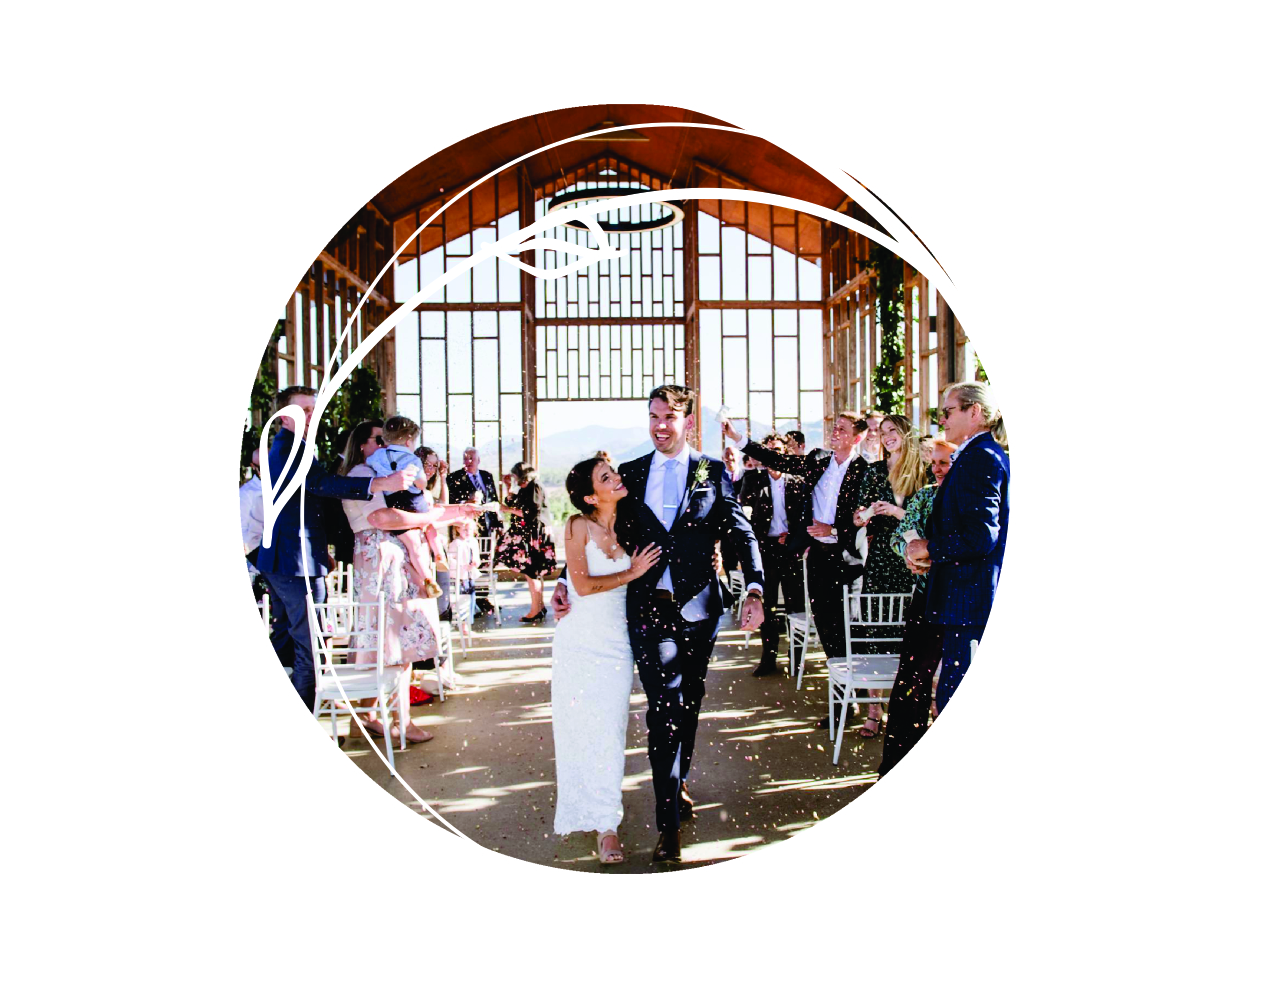 The perfect first impression    I am the first person your family and friends will meet on your wedding day. A big smile, warm welcome, and loving vibe always works a treat to warm up your guests for your big arrival.